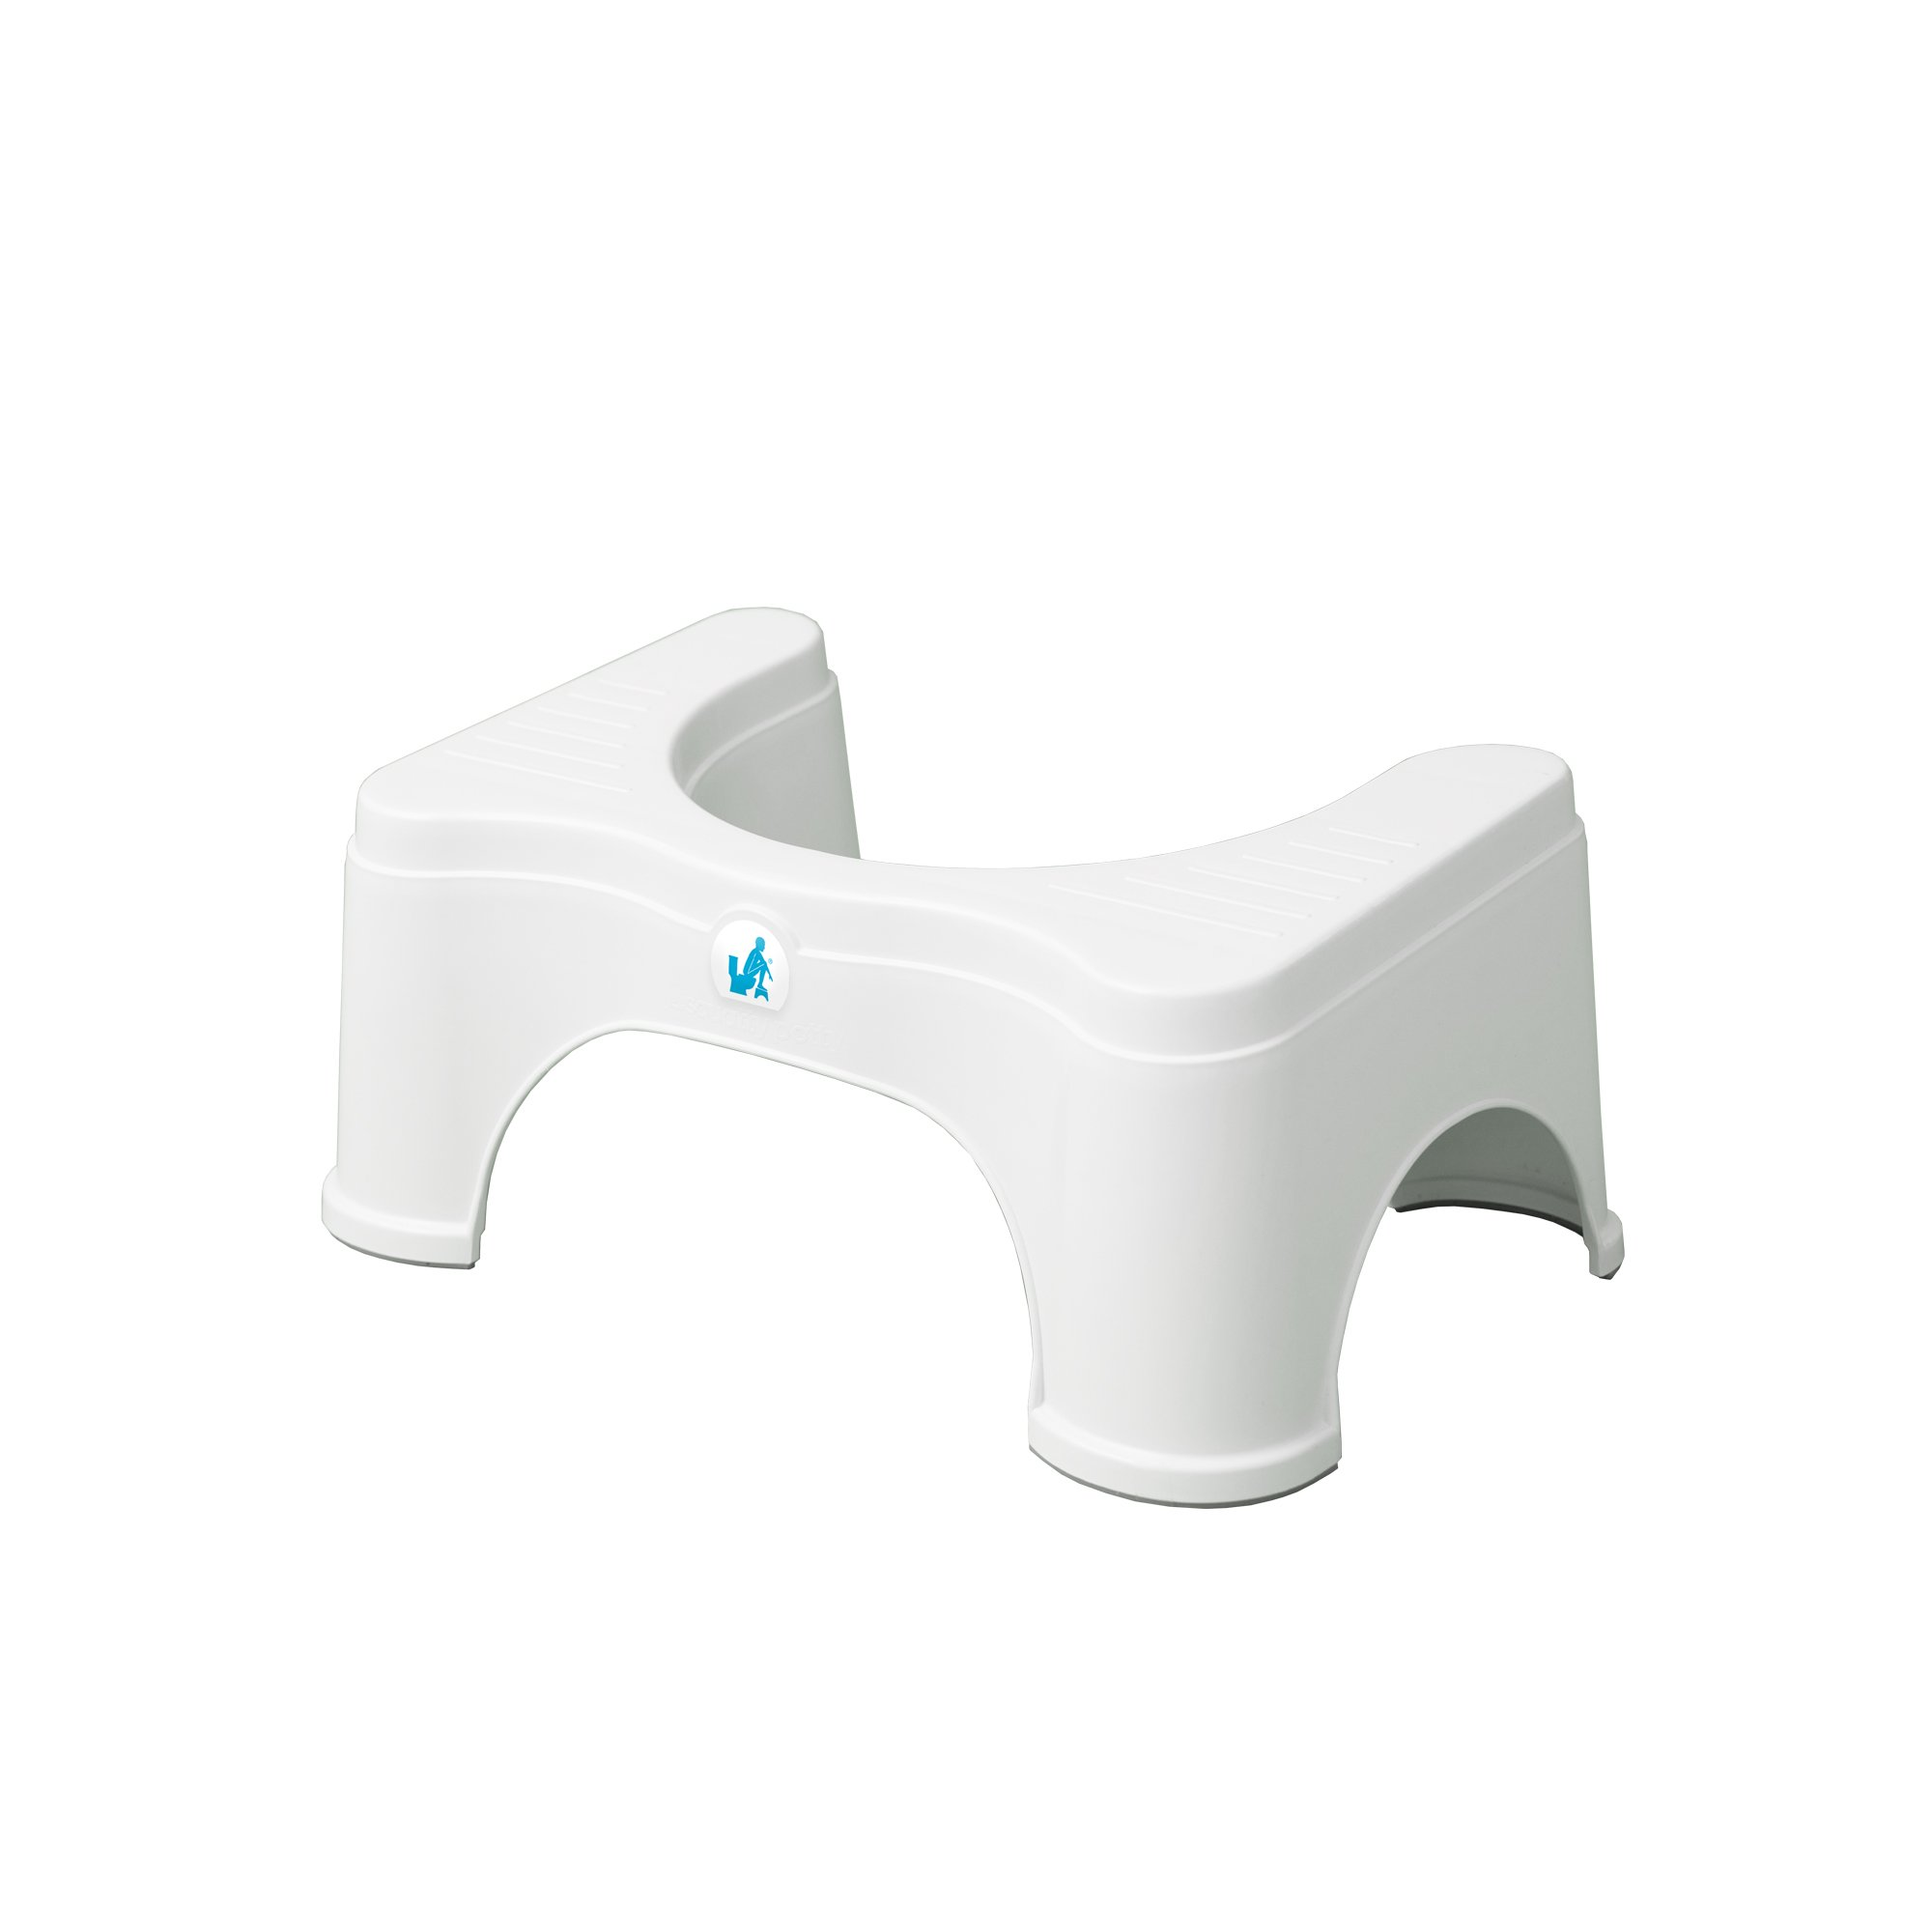 Squatty Potty The Original Bathroom Toilet Stool - Adjustable 2.0, Convertible to 7 inch or 9 inch Height, White by Squatty Potty (Image #4)